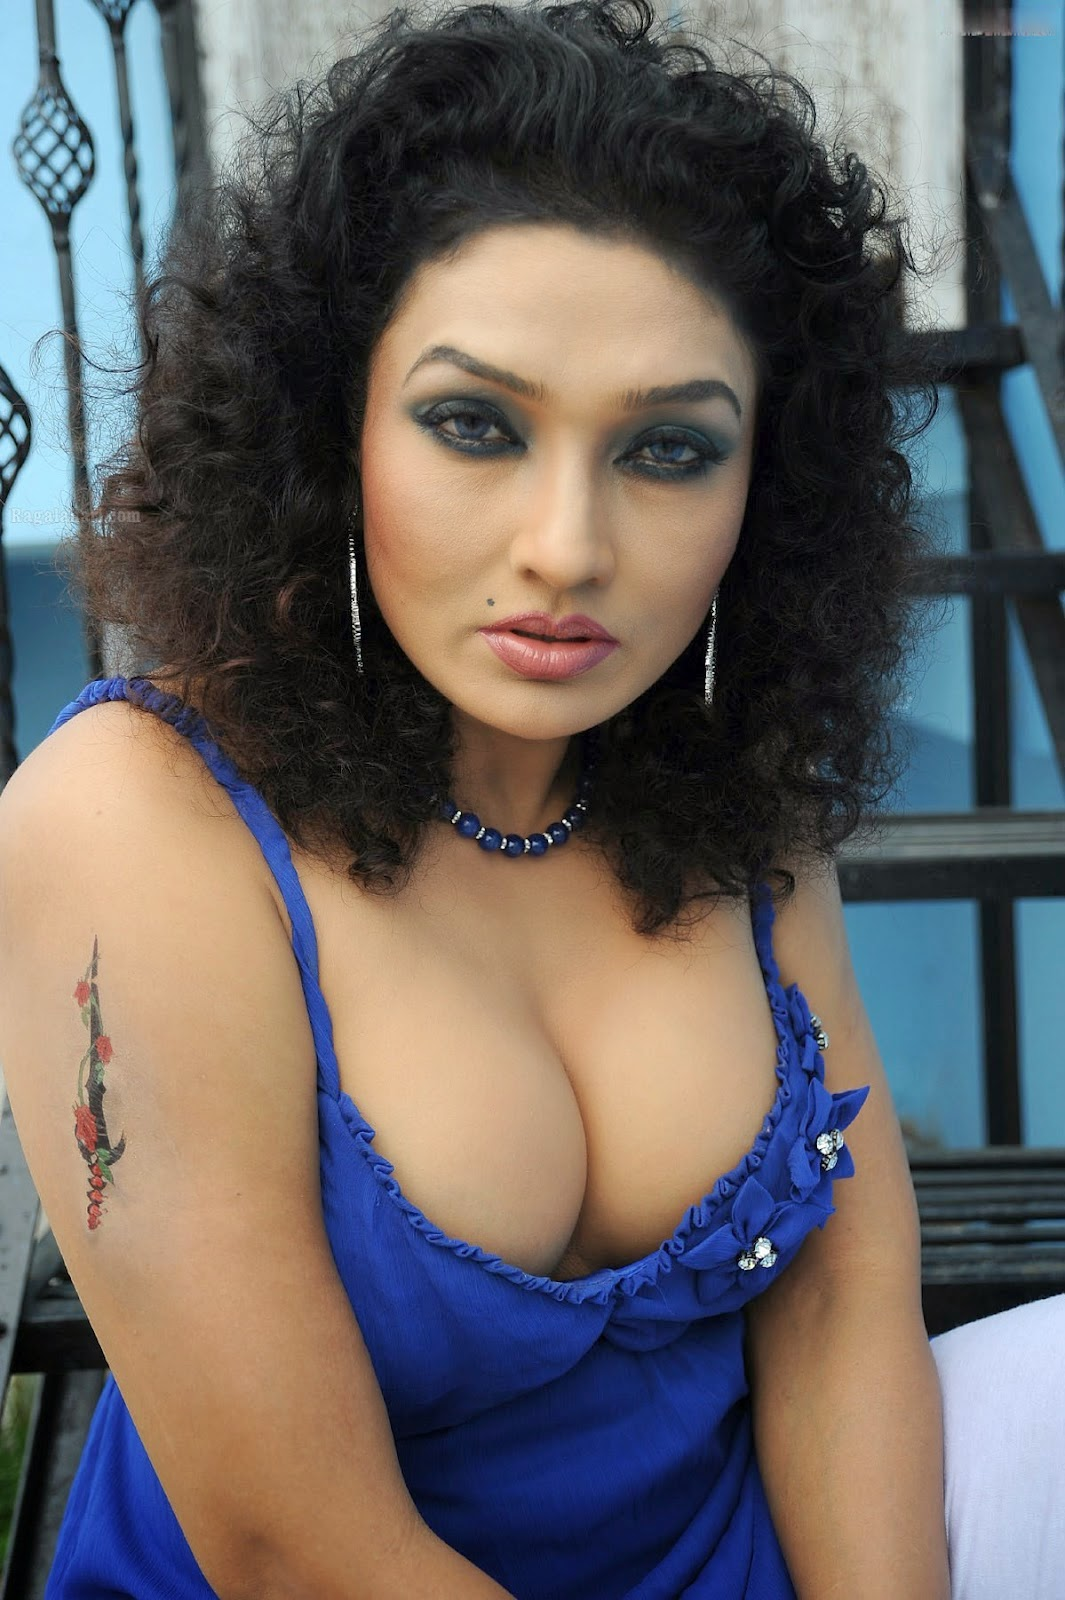 Seems hot telugu aunt images final, sorry